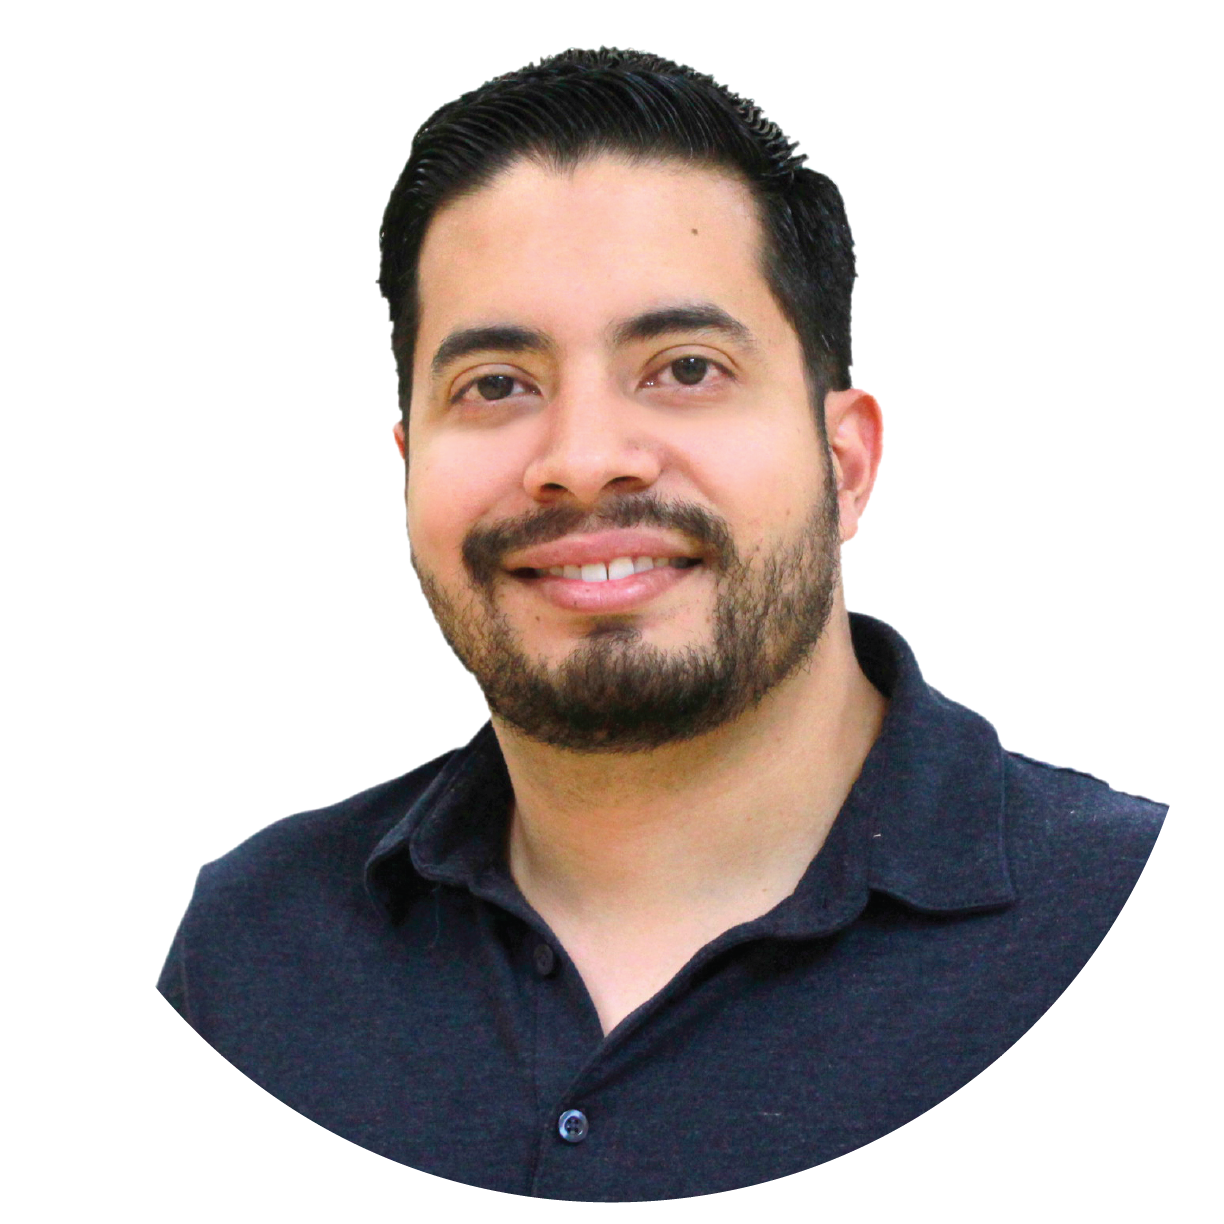 Gerardo Hernandez TECHNICAL DELIVERY MANAGER